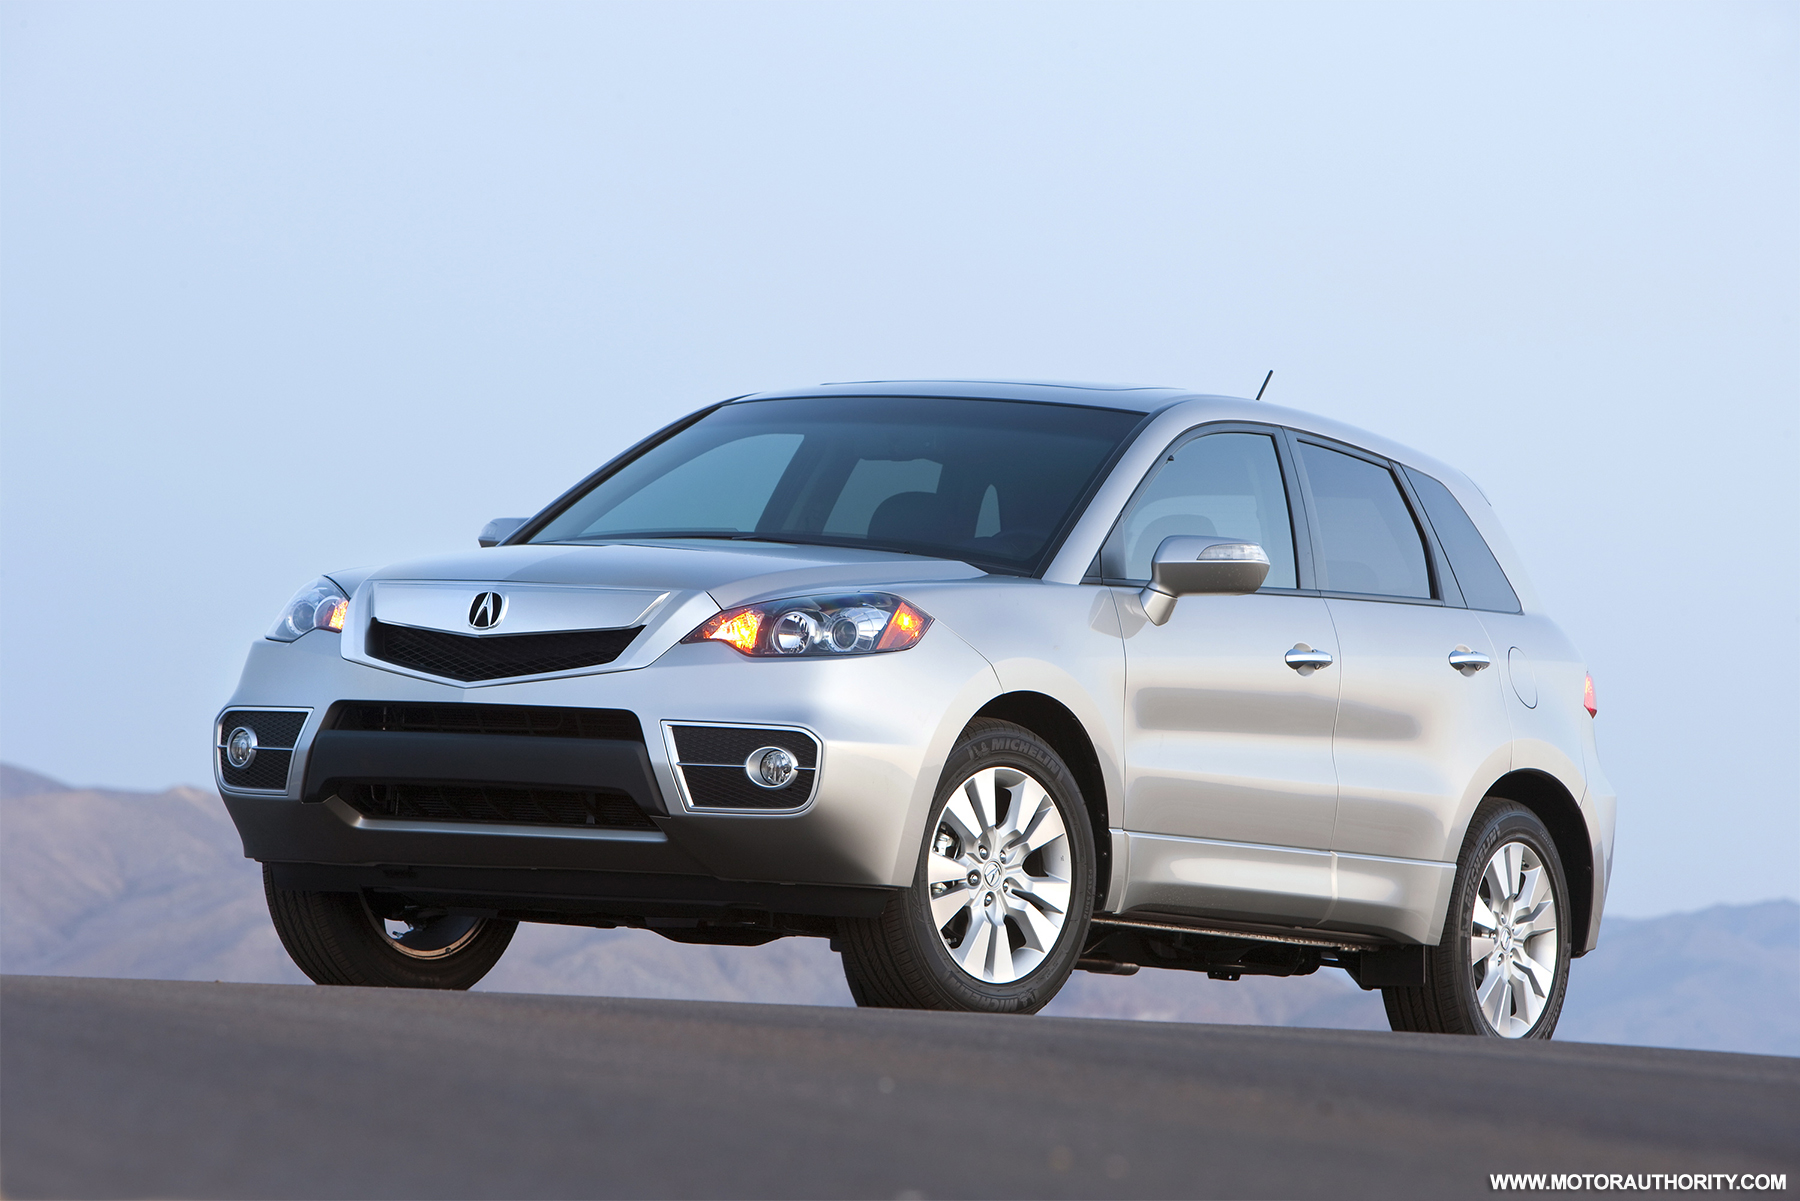 2010 acura rdx styling review the car connection. Black Bedroom Furniture Sets. Home Design Ideas